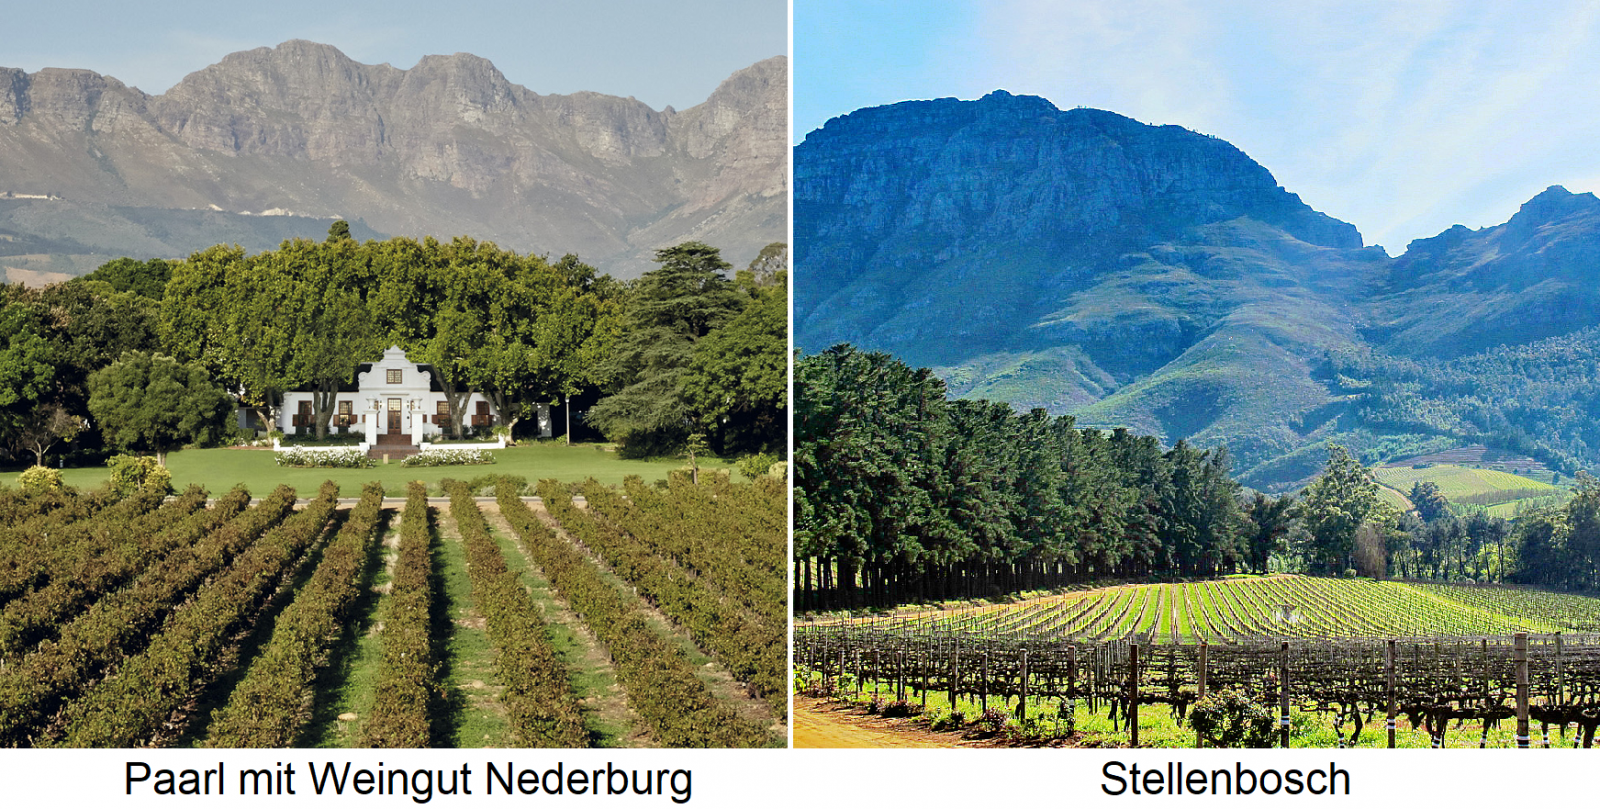 South Africa - vineyards in Paarl (with winery Nederburg) and Stellenbosch